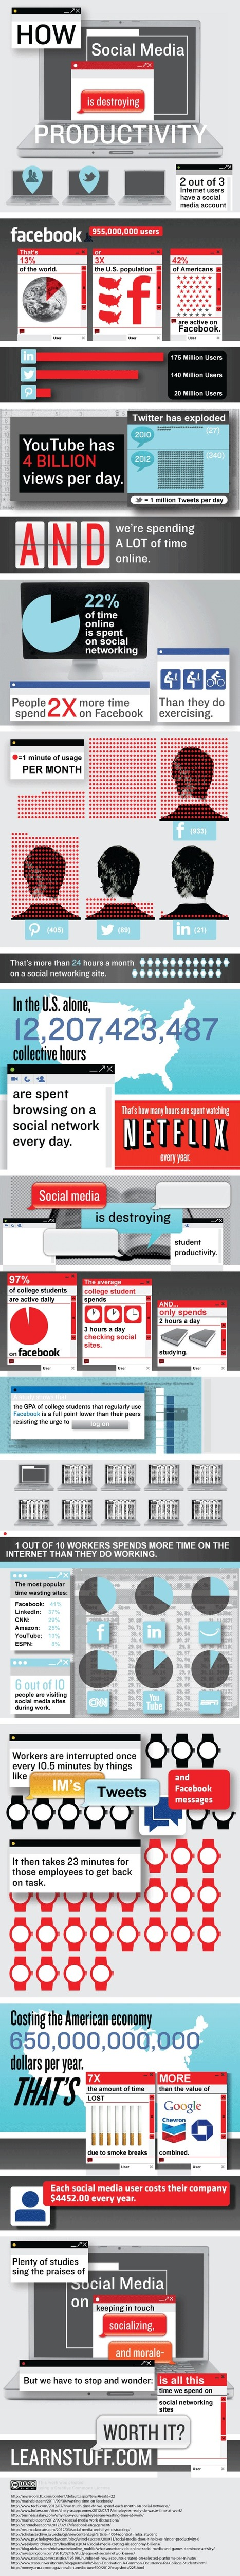 Social Media at Work [Infographic] | Best Infographics of all time | Scoop.it